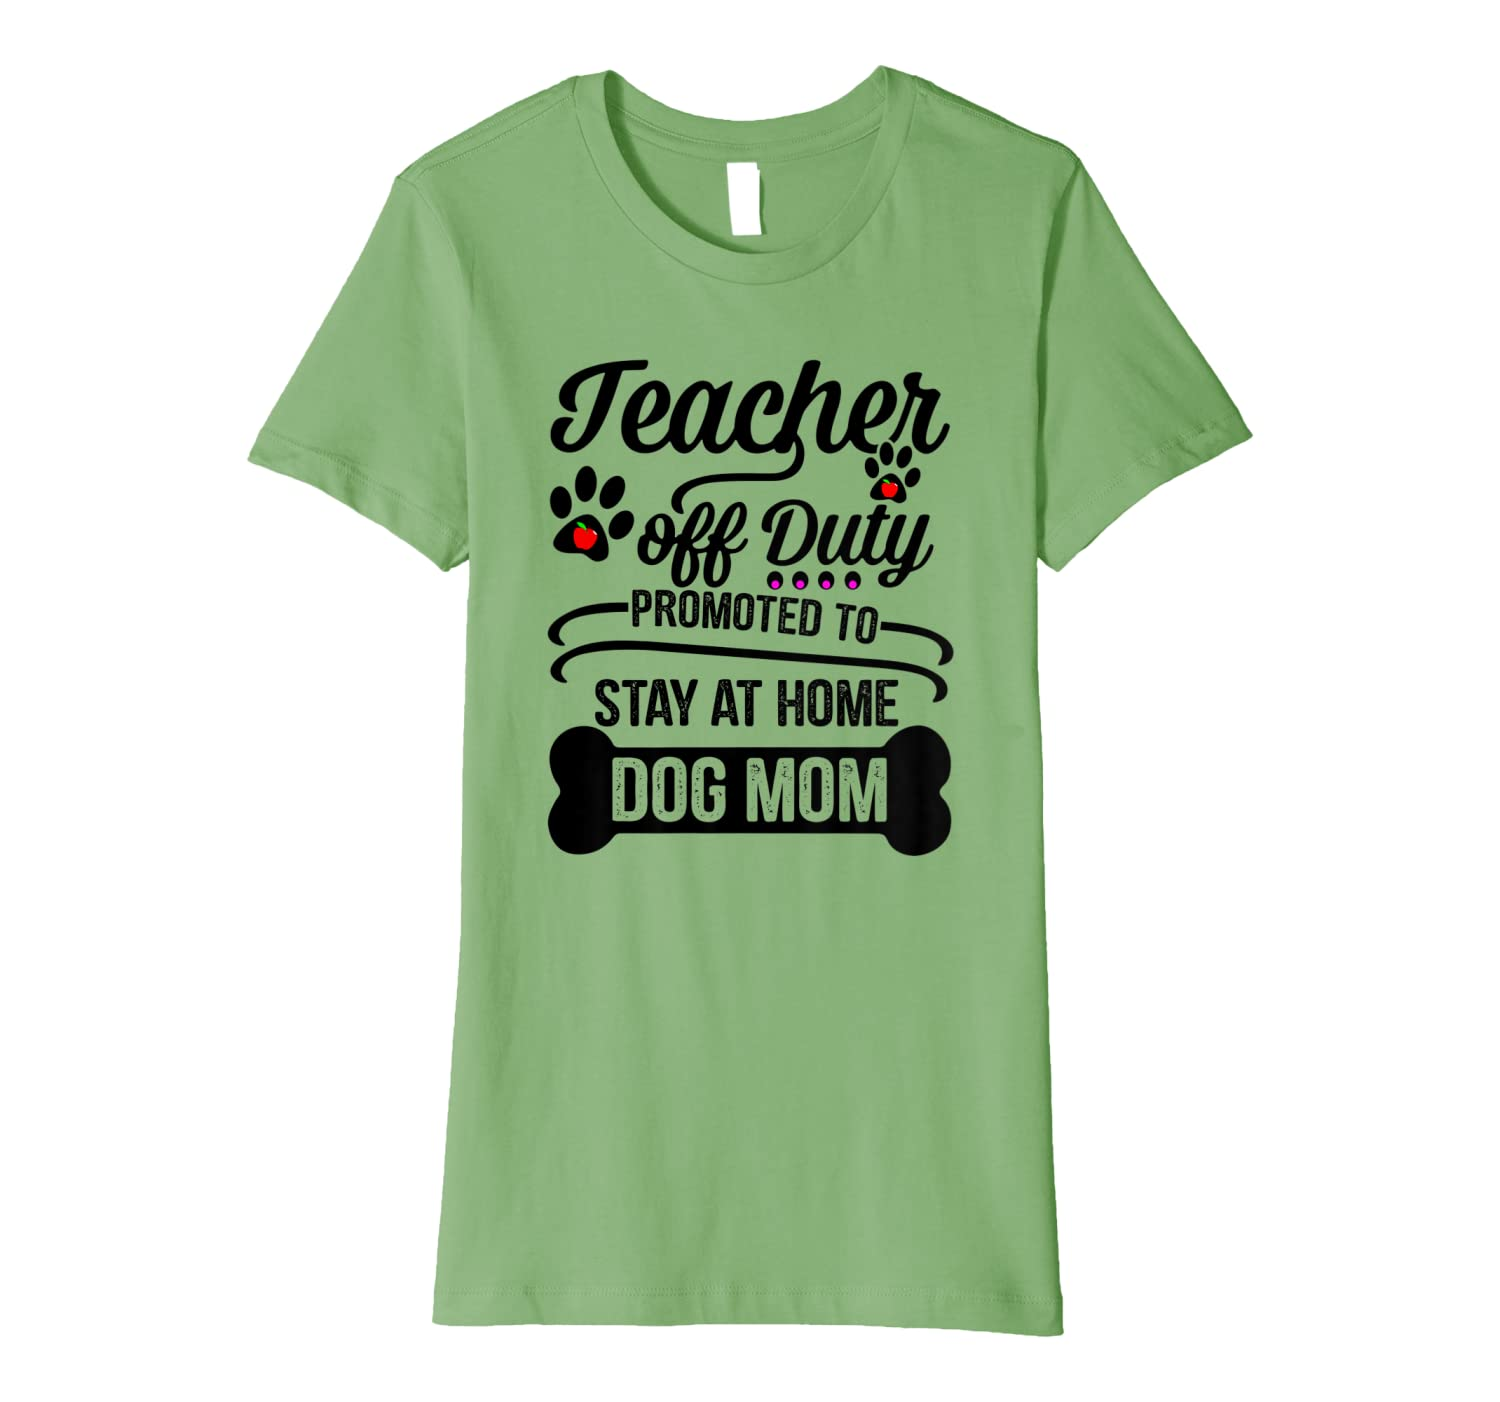 54dabd021825 Amazon.com: Teacher Off Duty Promoted To Stay At Home Dog Mom Gift Shirt  Premium T-Shirt: Clothing